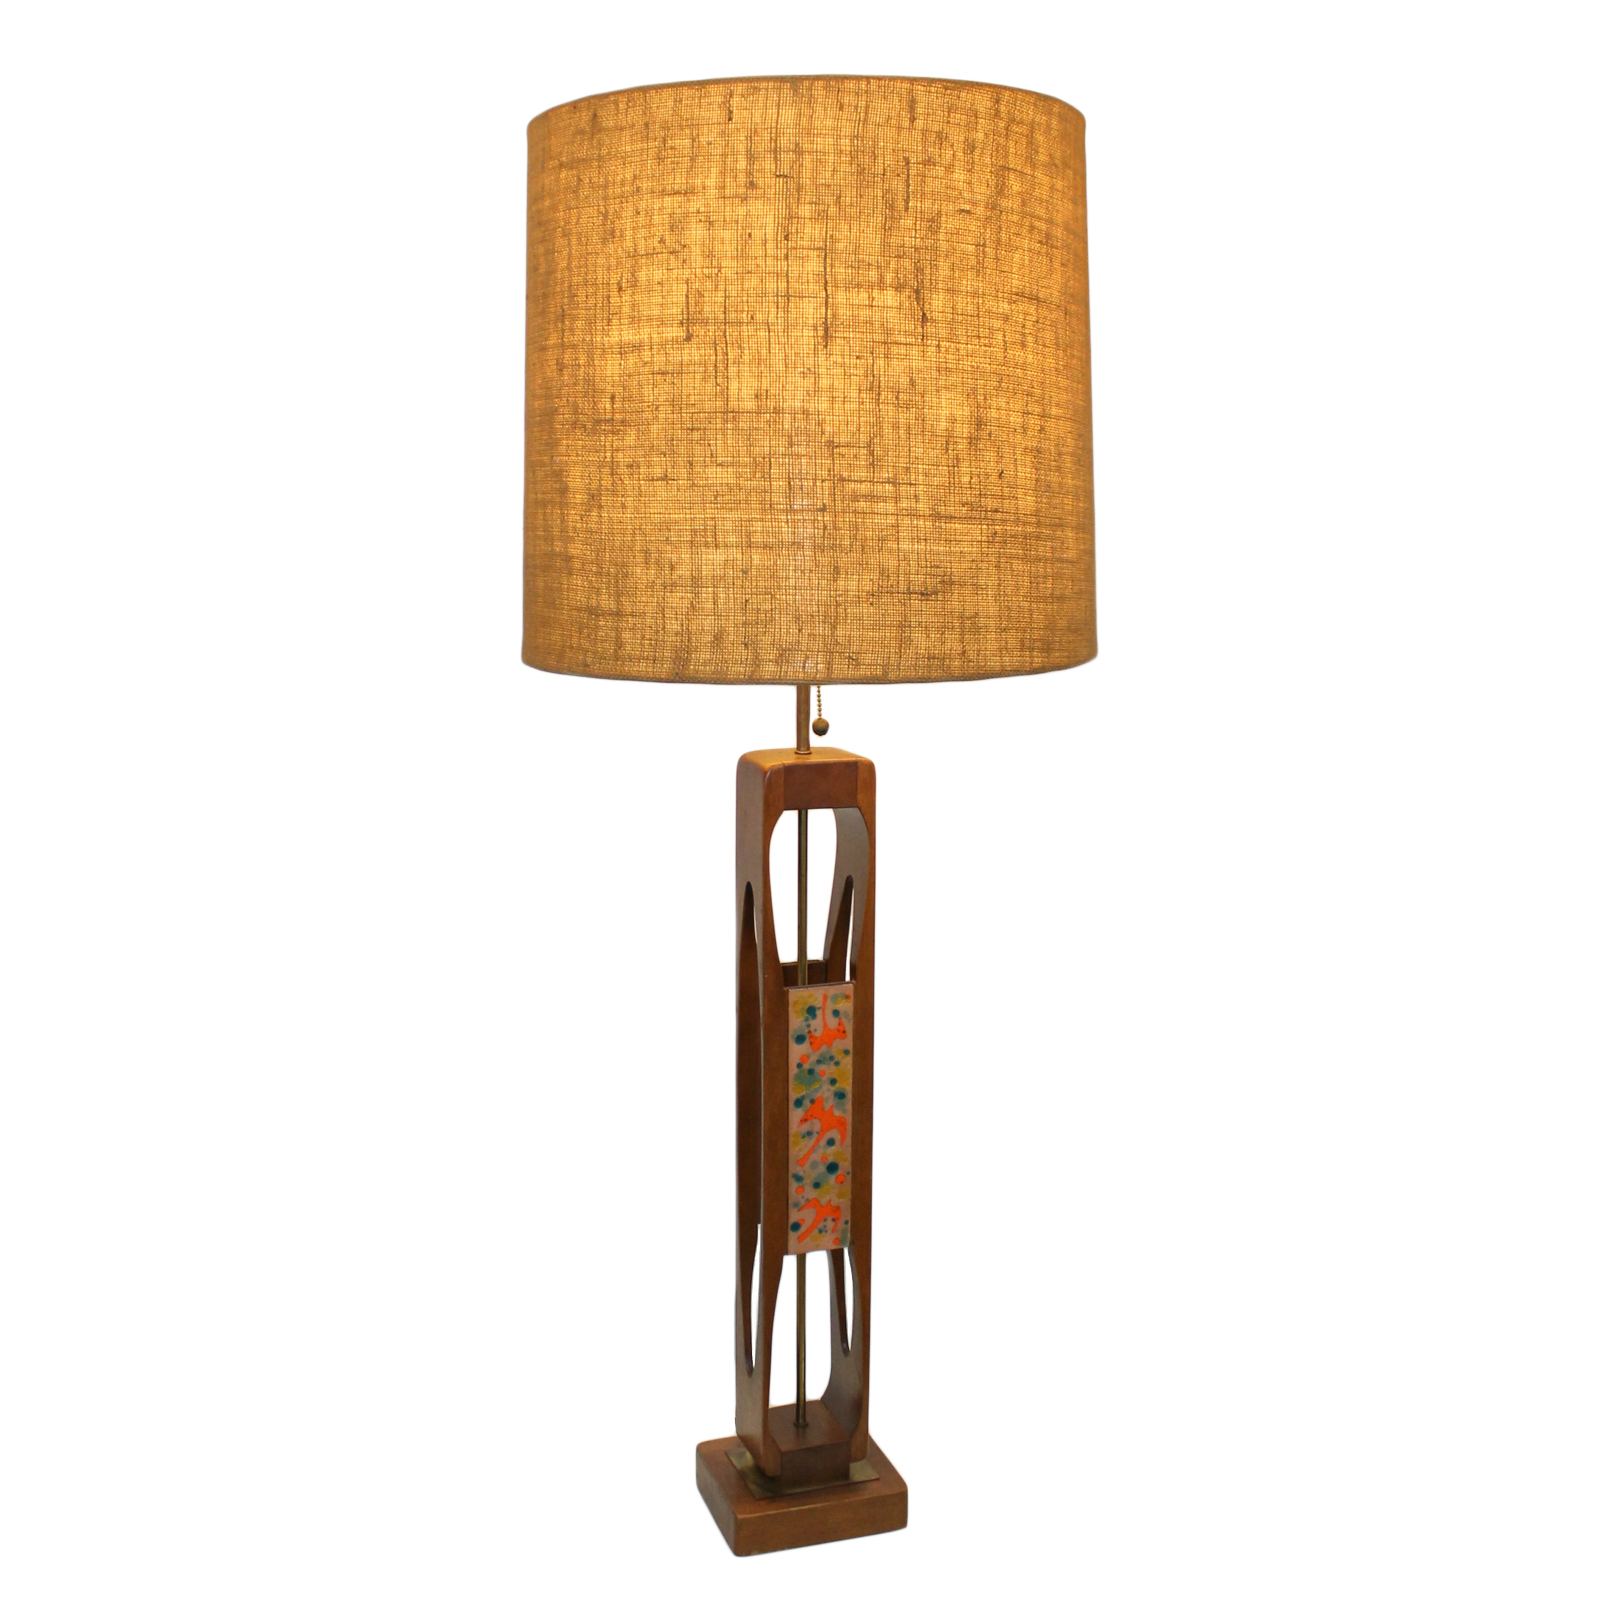 Monumental Teak Table Lamp Modeline of Cali Chairish : monumental teak table lamp modeline of cali 2225 from www.chairish.com size 1600 x 1600 png 970kB